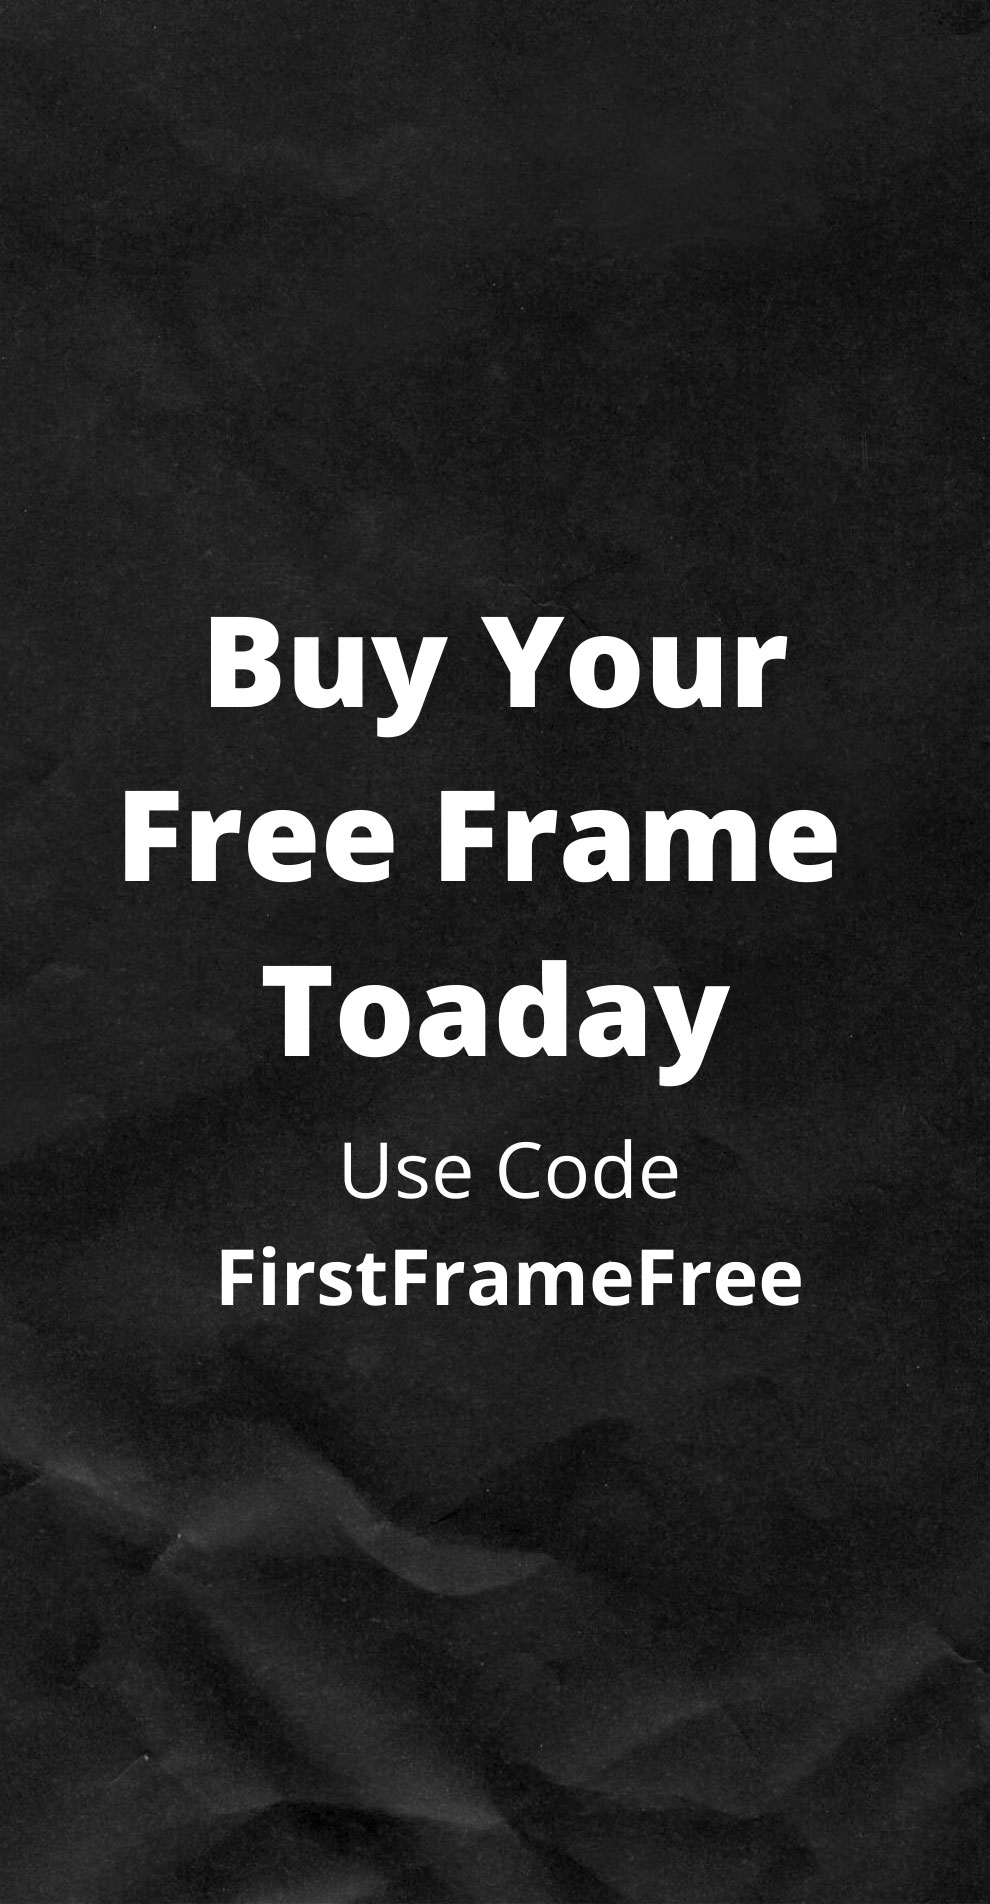 buy your free frame today